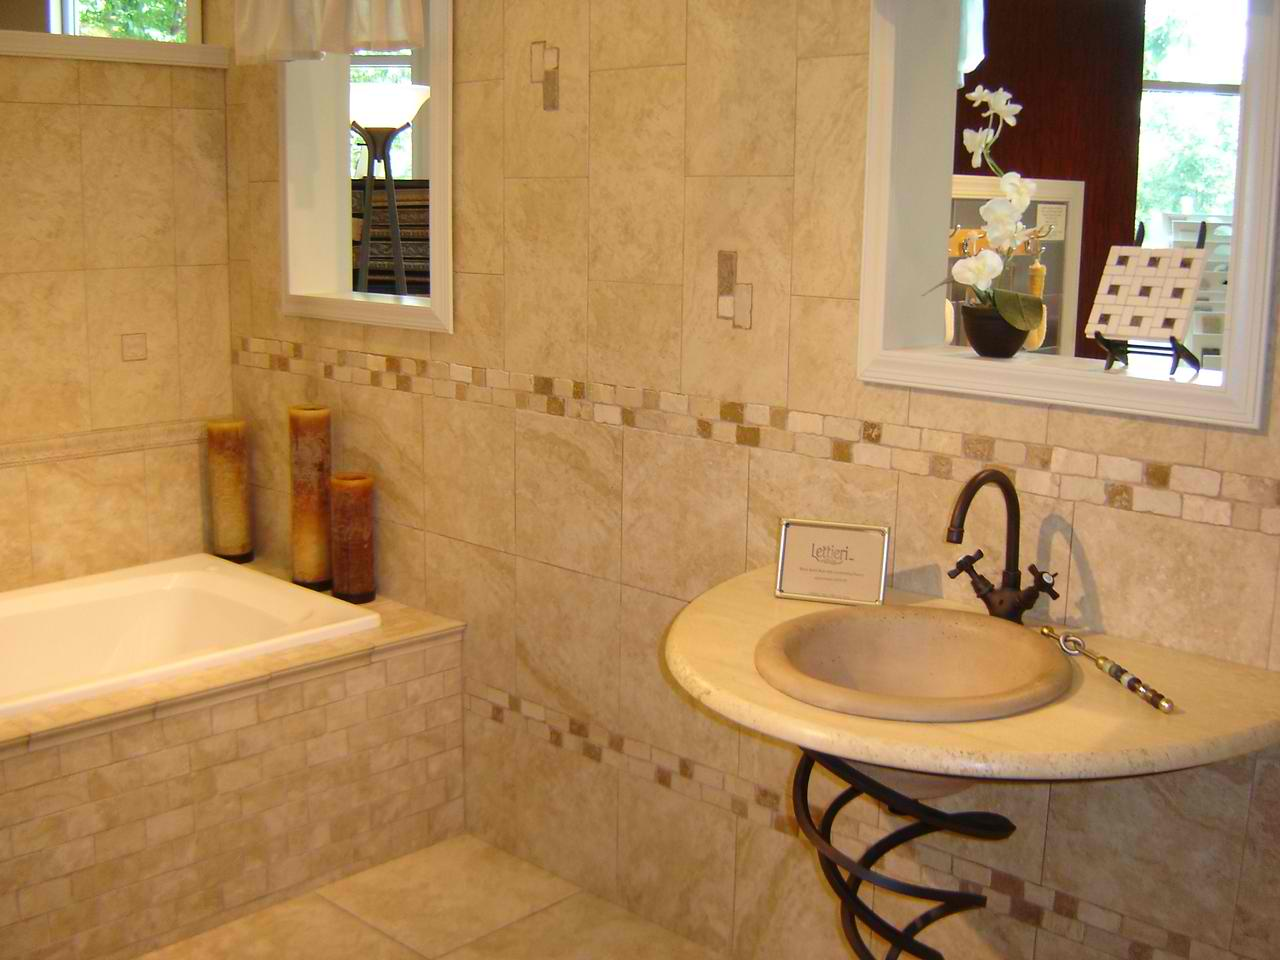 bathroom tile designs bathroom tile ideas bathroom tile design. beautiful ideas. Home Design Ideas